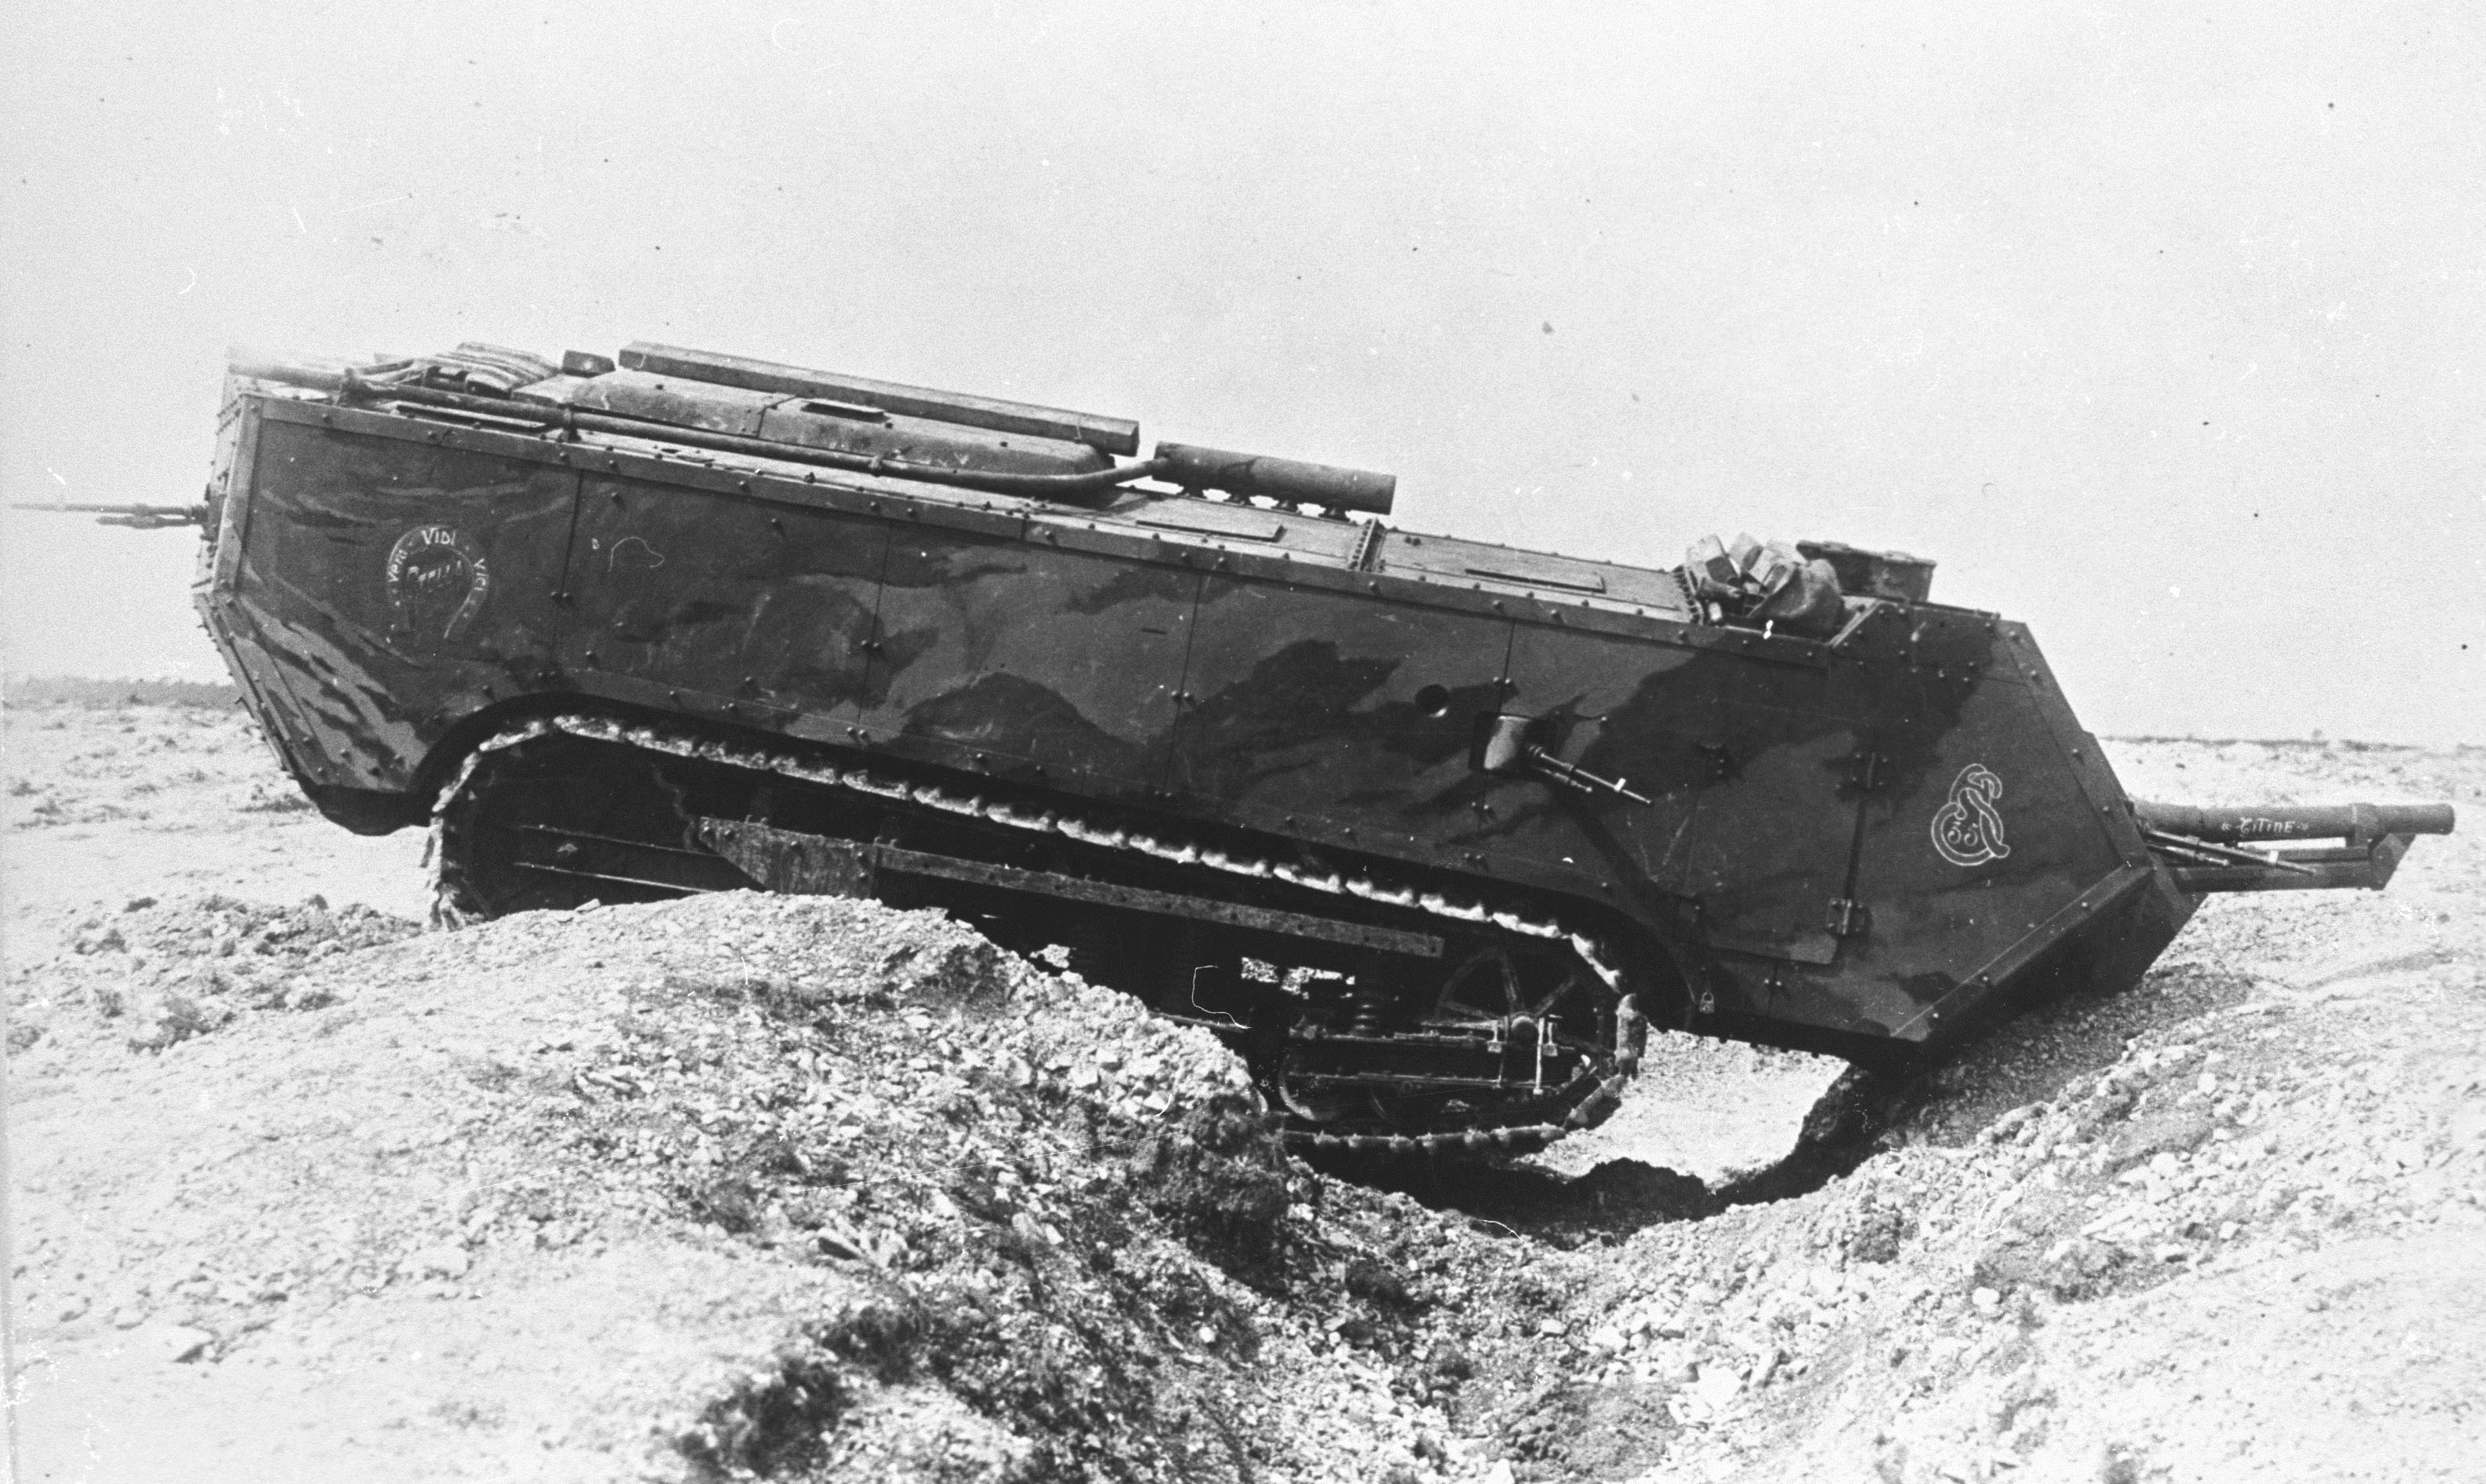 The first tanks of the First World War. Breakthrough in the technical equipment of the armies 2